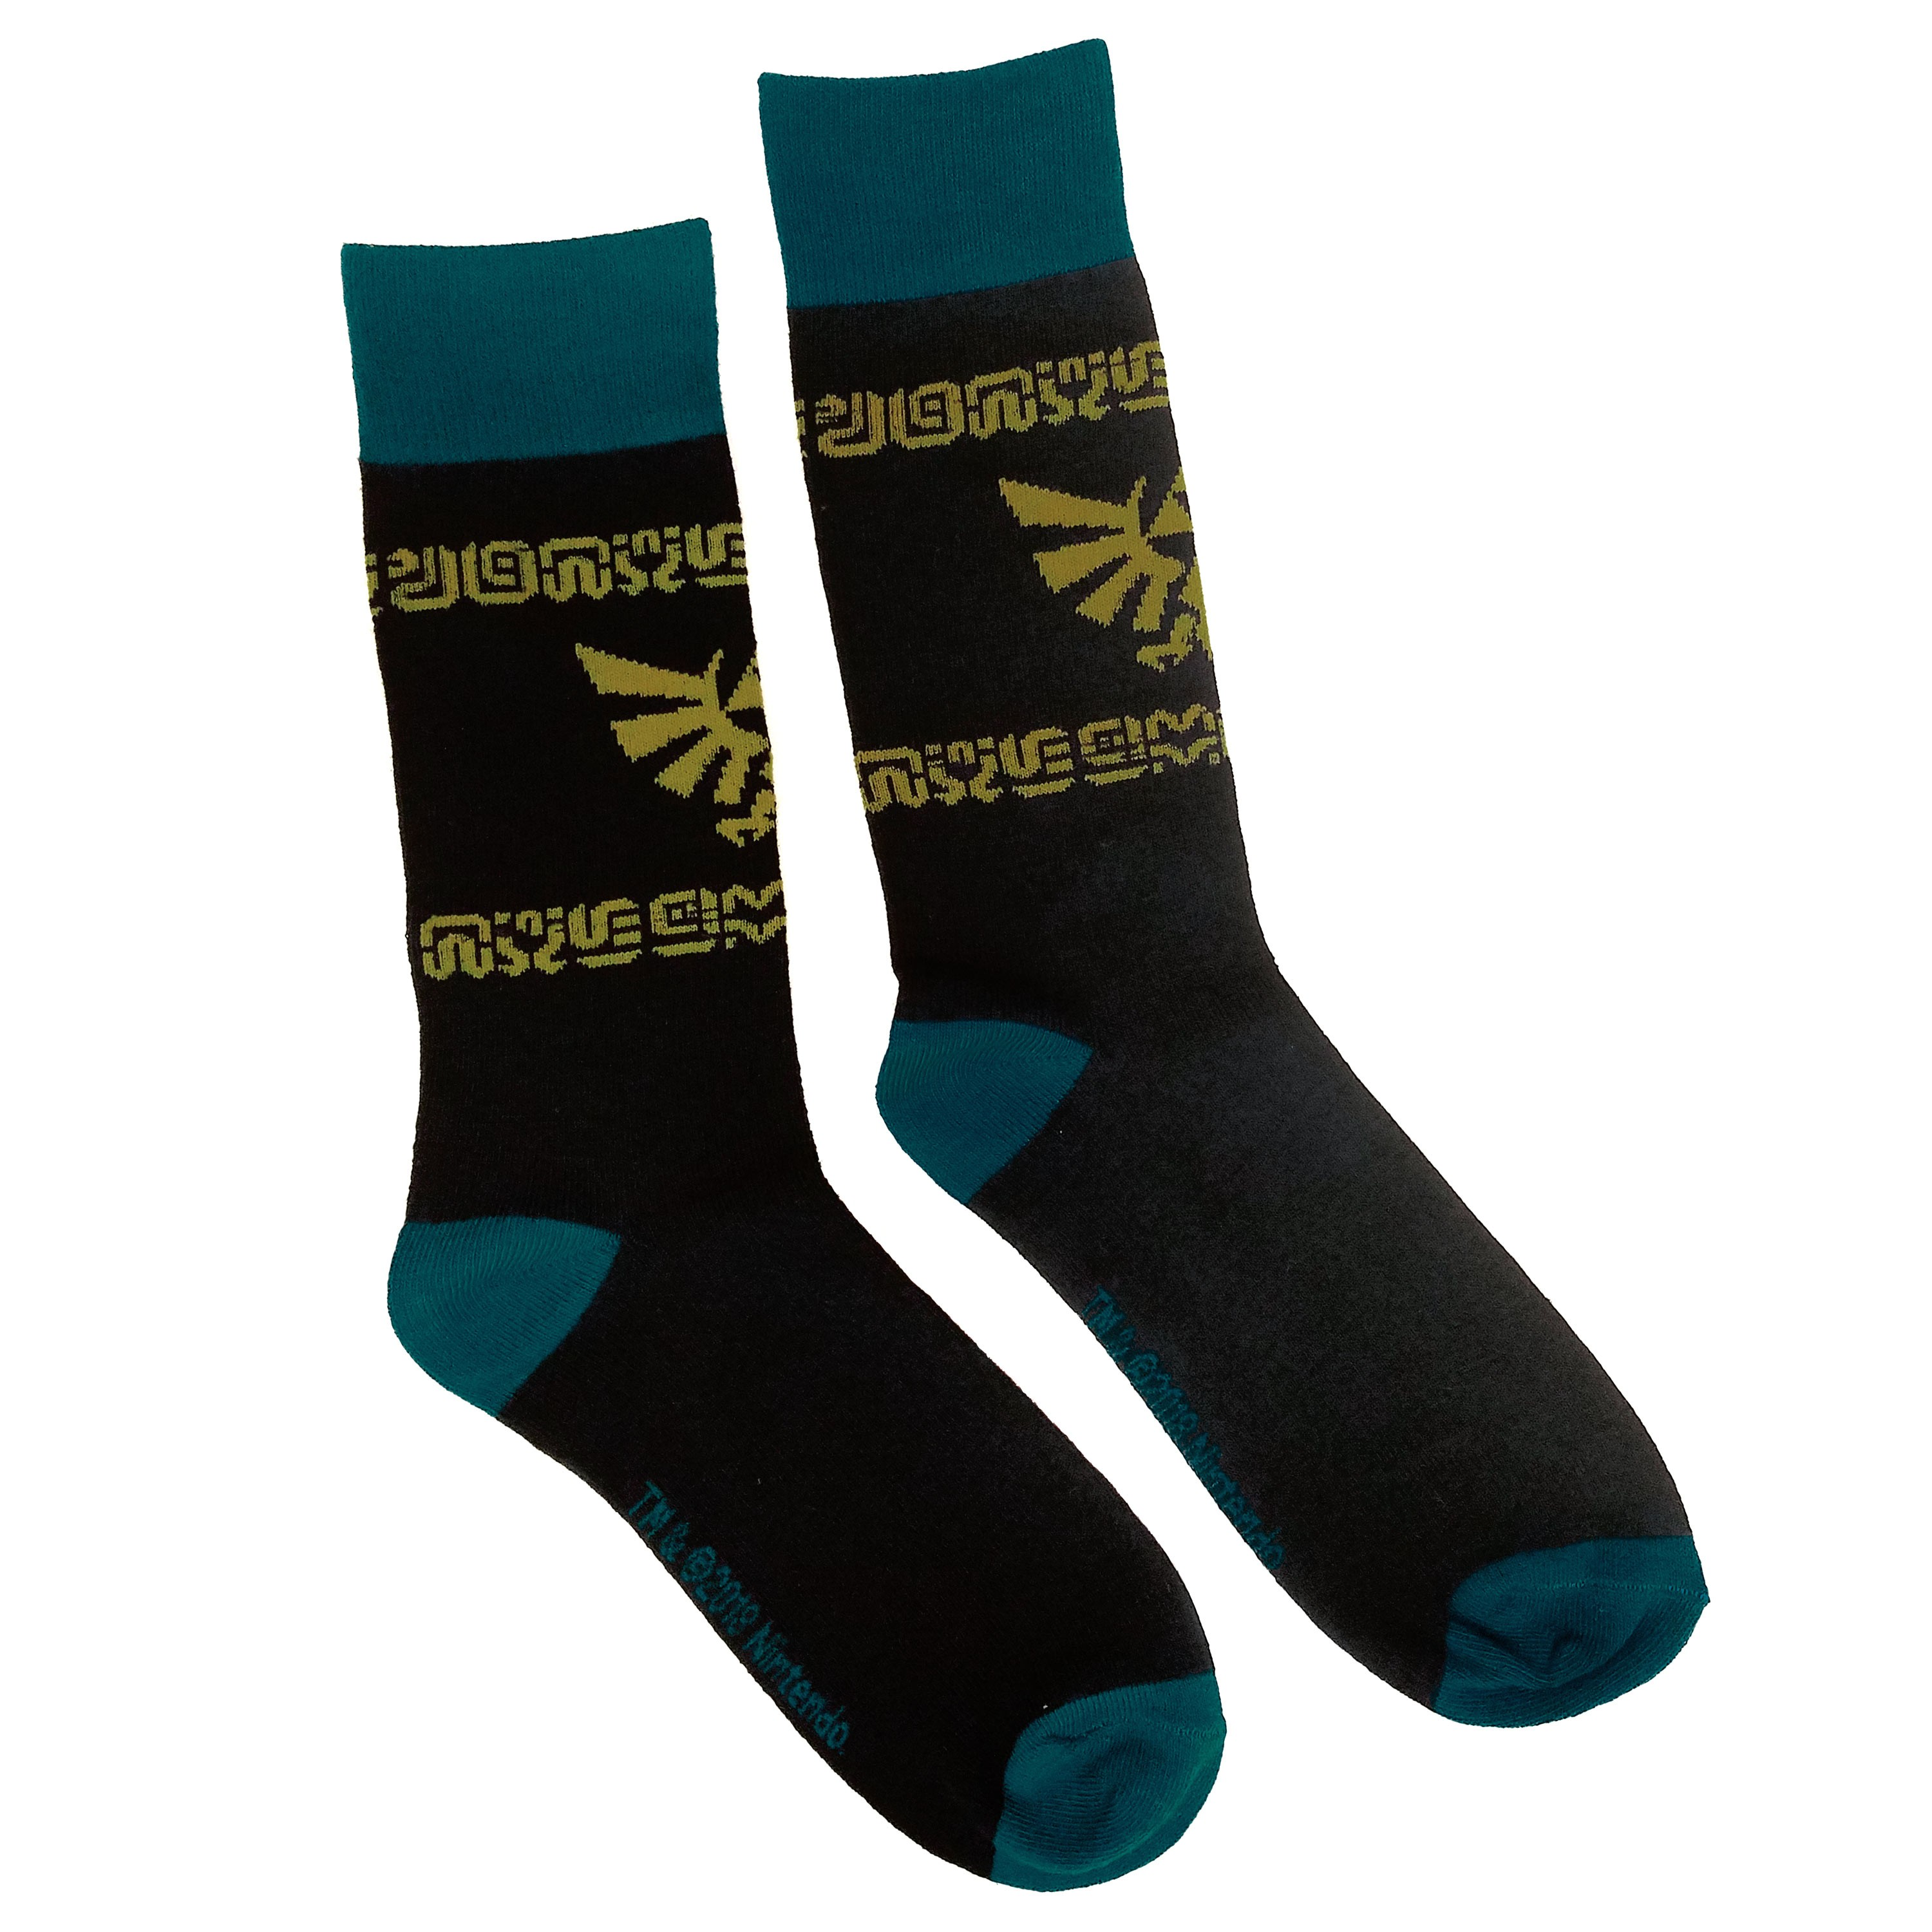 "The Legend of Zelda: Breath of the Wild™ ""Blue and Gold Hyrule Crest Repeat"" Sock - Officially Licensed by Nintendo"